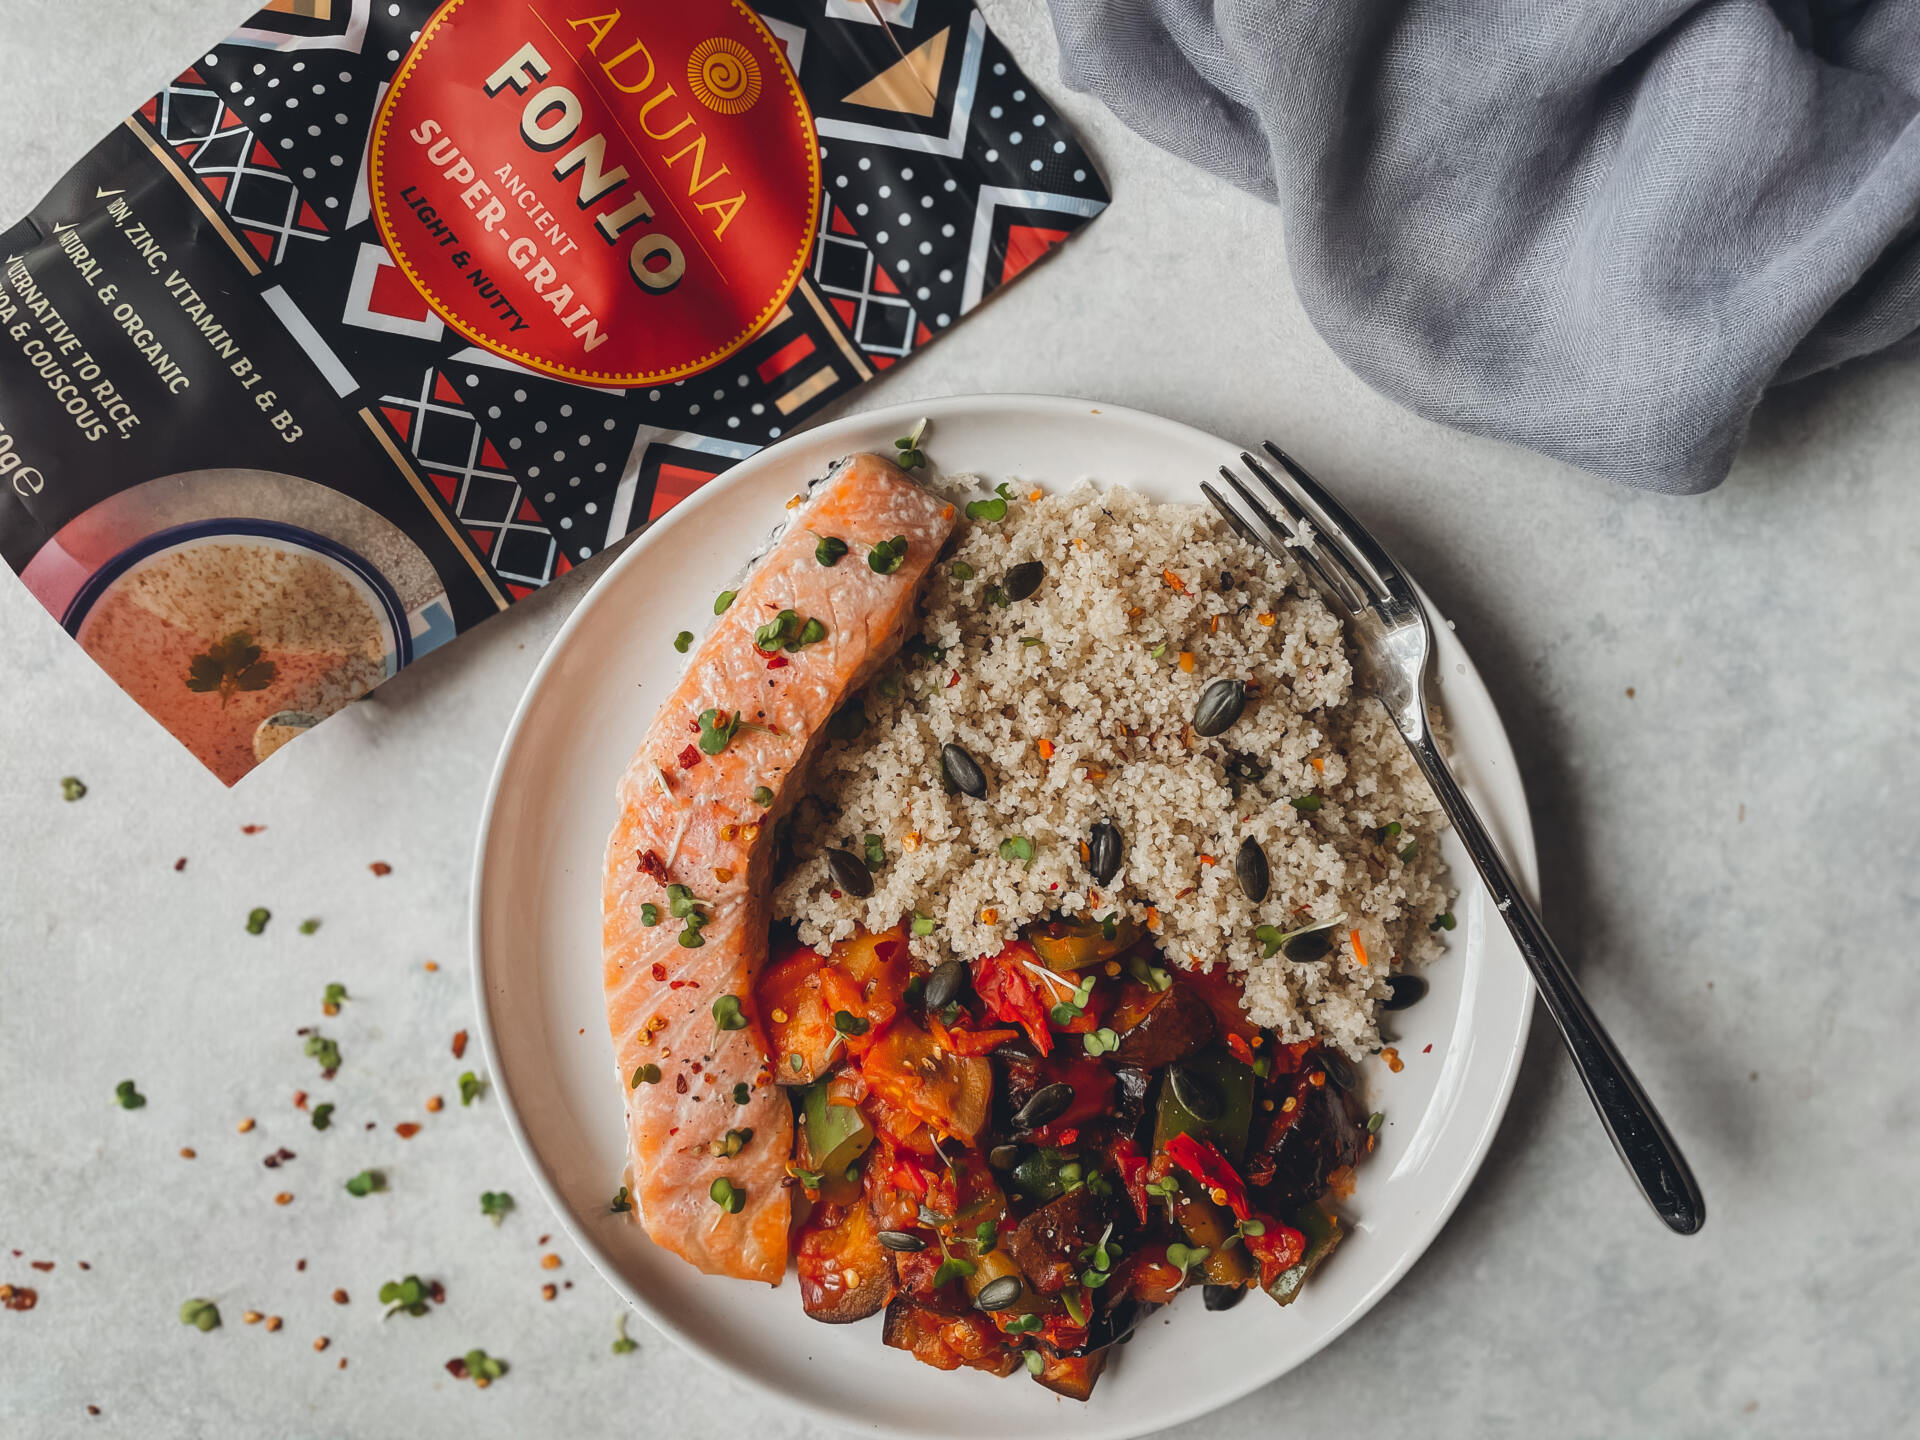 Fonio with baked salmon